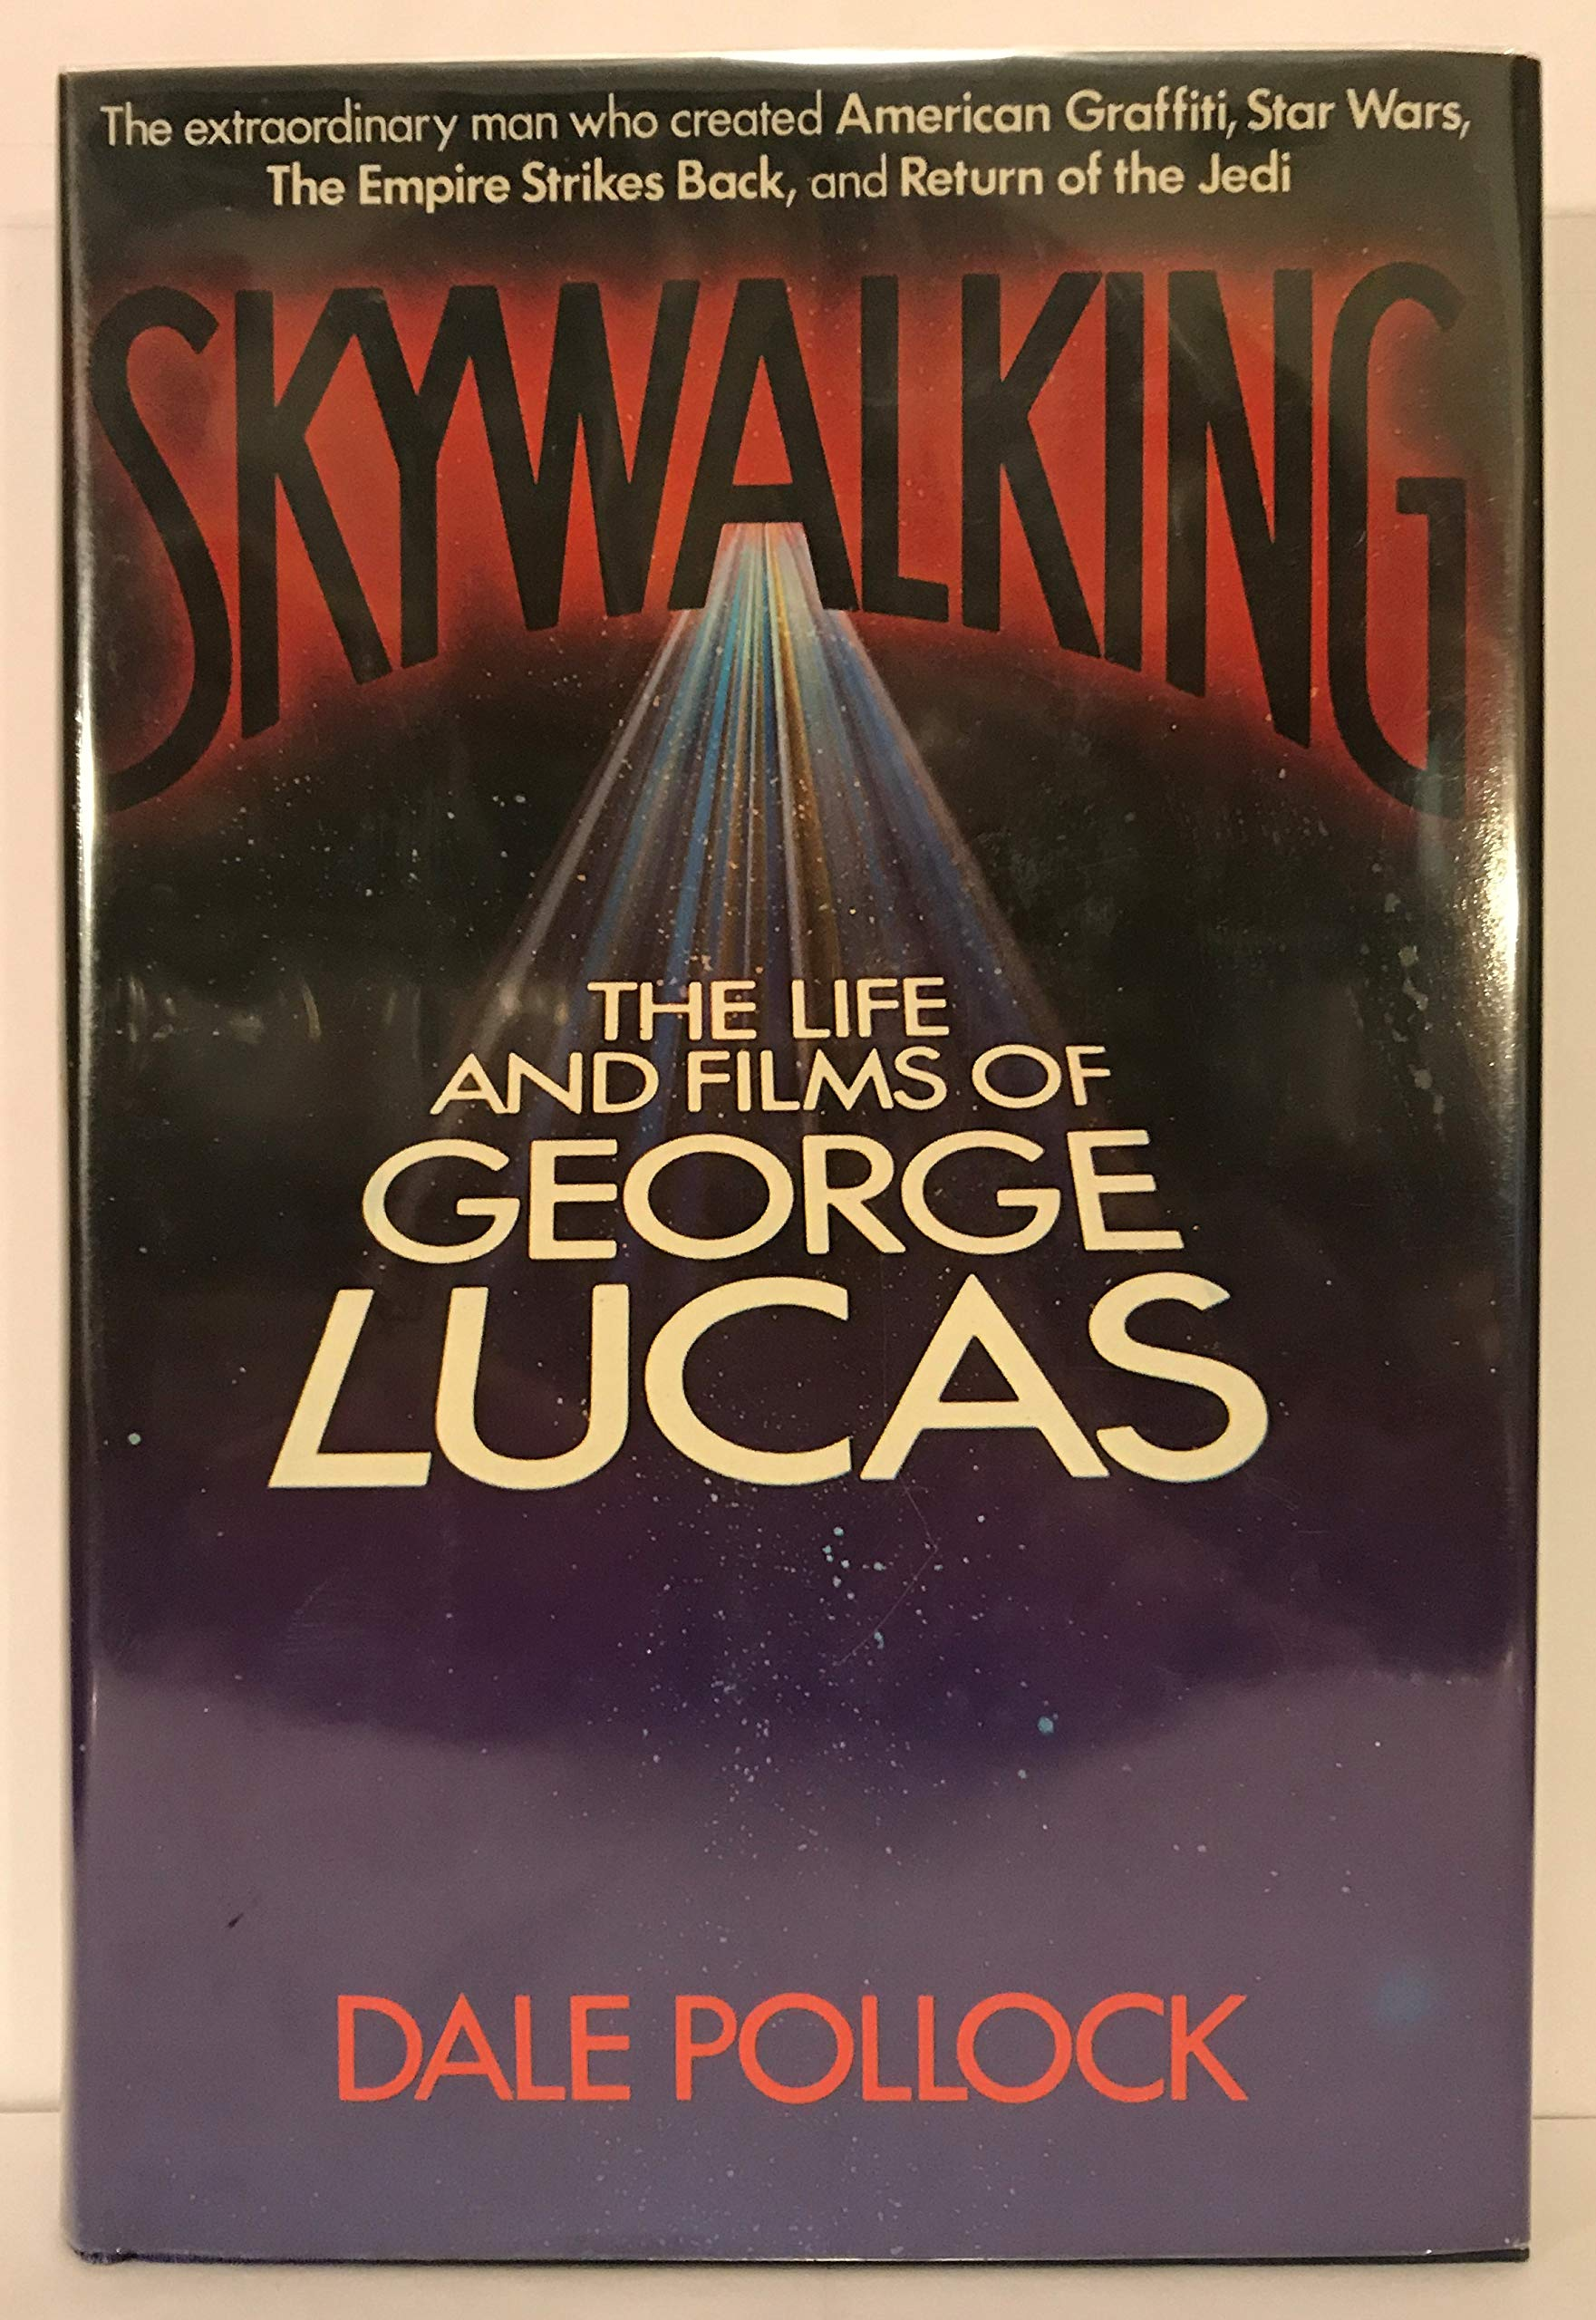 Skywalking: The Life and Films of George Lucas